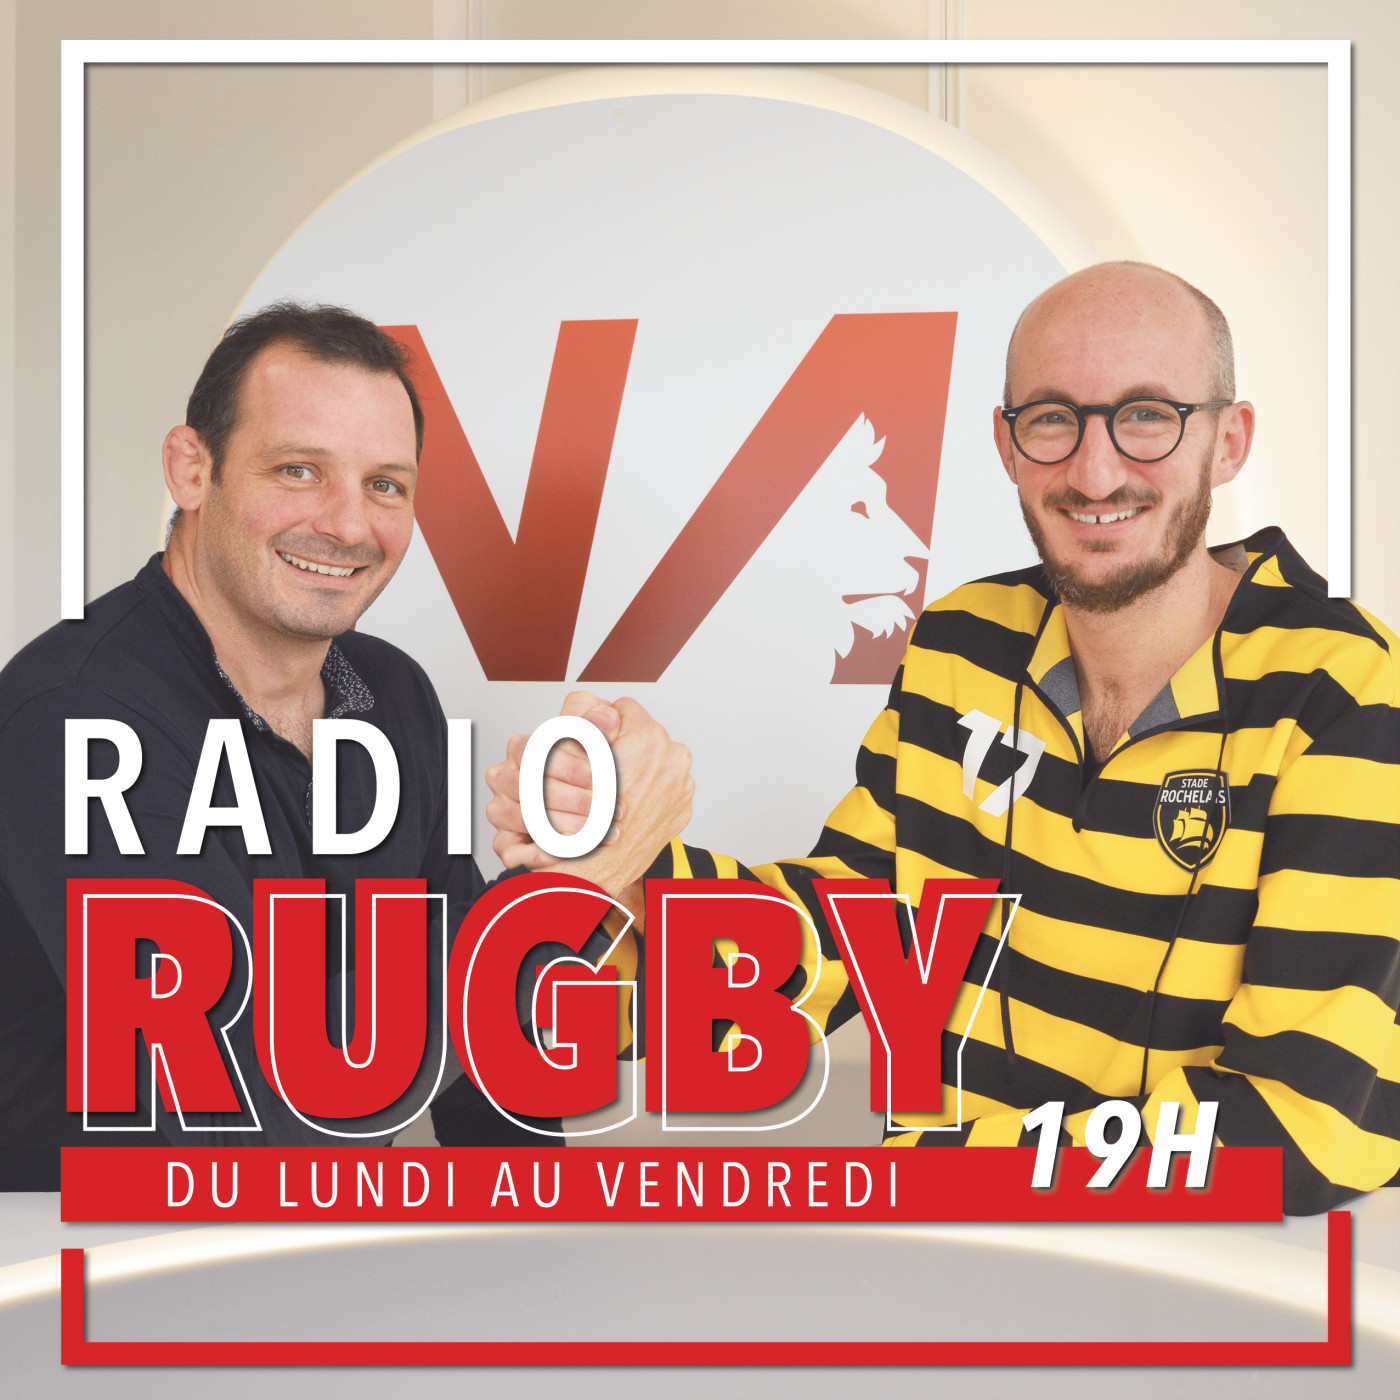 RADIO RUGBY - VENDREDI 30 AVRIL